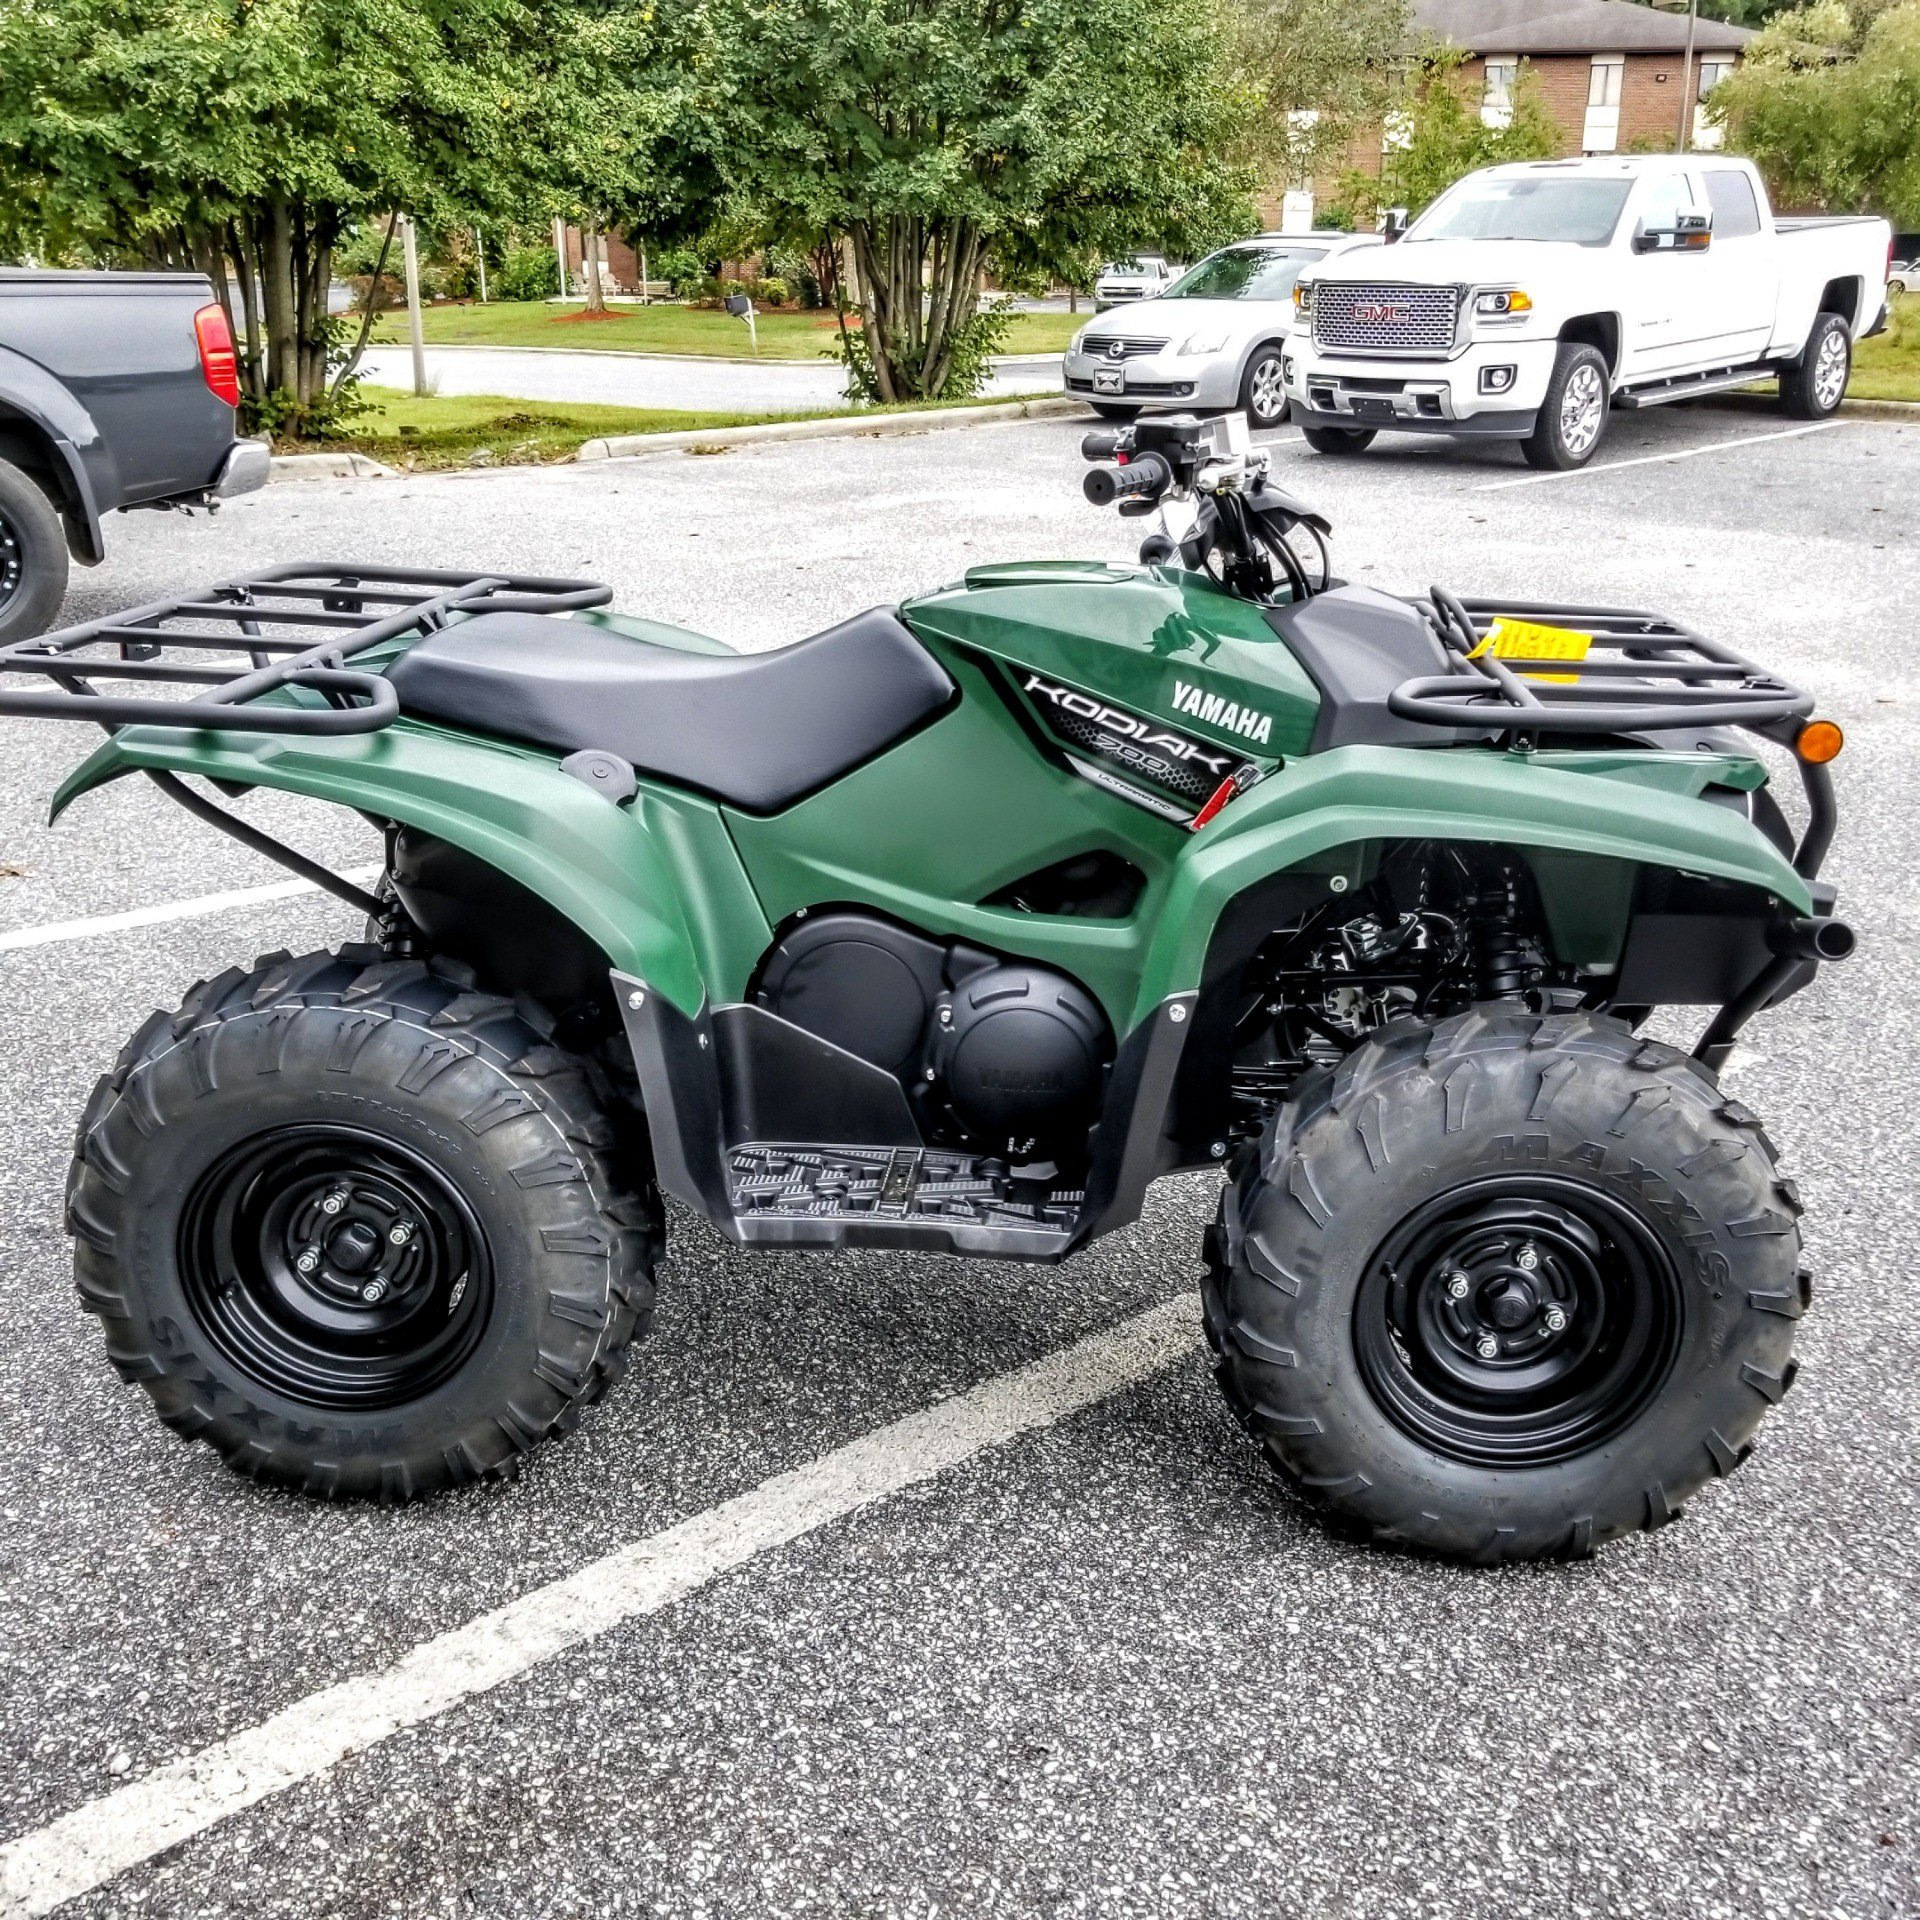 2019 Yamaha Kodiak 700 in Hickory, North Carolina - Photo 6